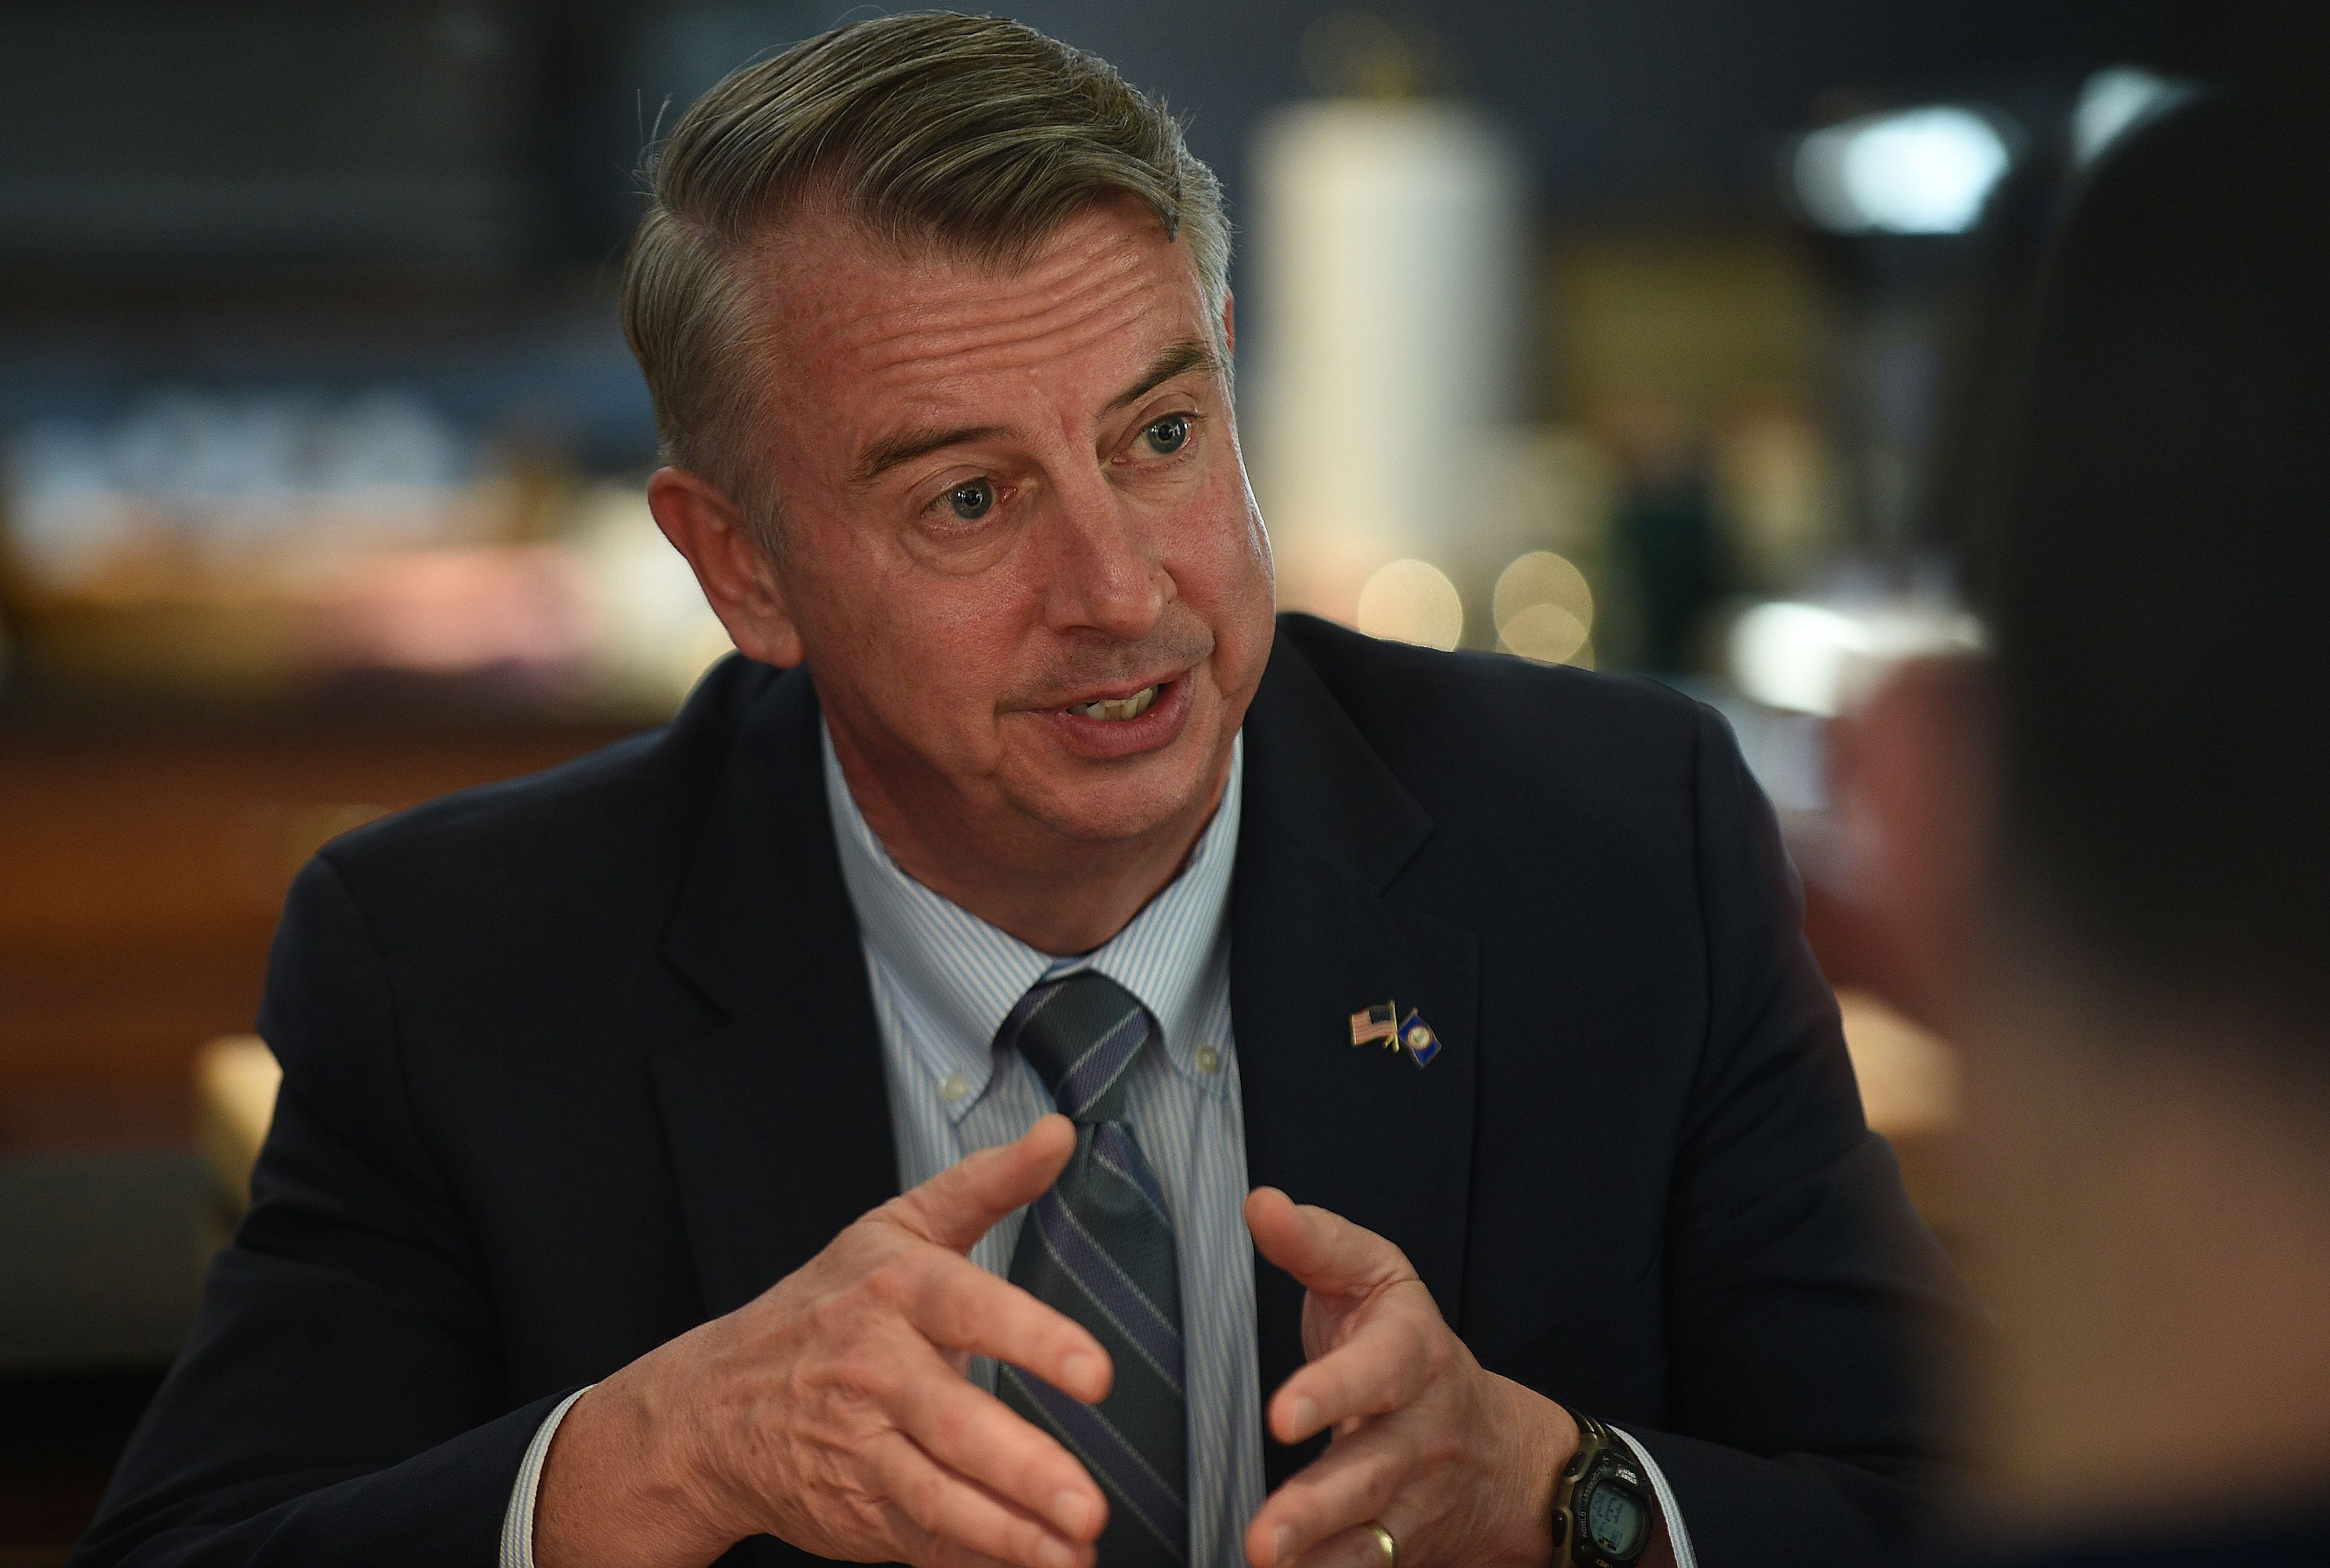 STERLING, VA - MARCH 16: 2017 Republican candidate for governor Ed Gillespie announces his policy initiative during Loudoun Kitchen Table Conversation in Sterling, VA, March 16, 2017. Gillespie, who was the 61st Chairman of the Republican National Committee and a 2014 U.S. Senate nominee, opposed tax cuts for all Virginian during the event. (Photo by Astrid Riecken For The Washington Post via Getty Images)